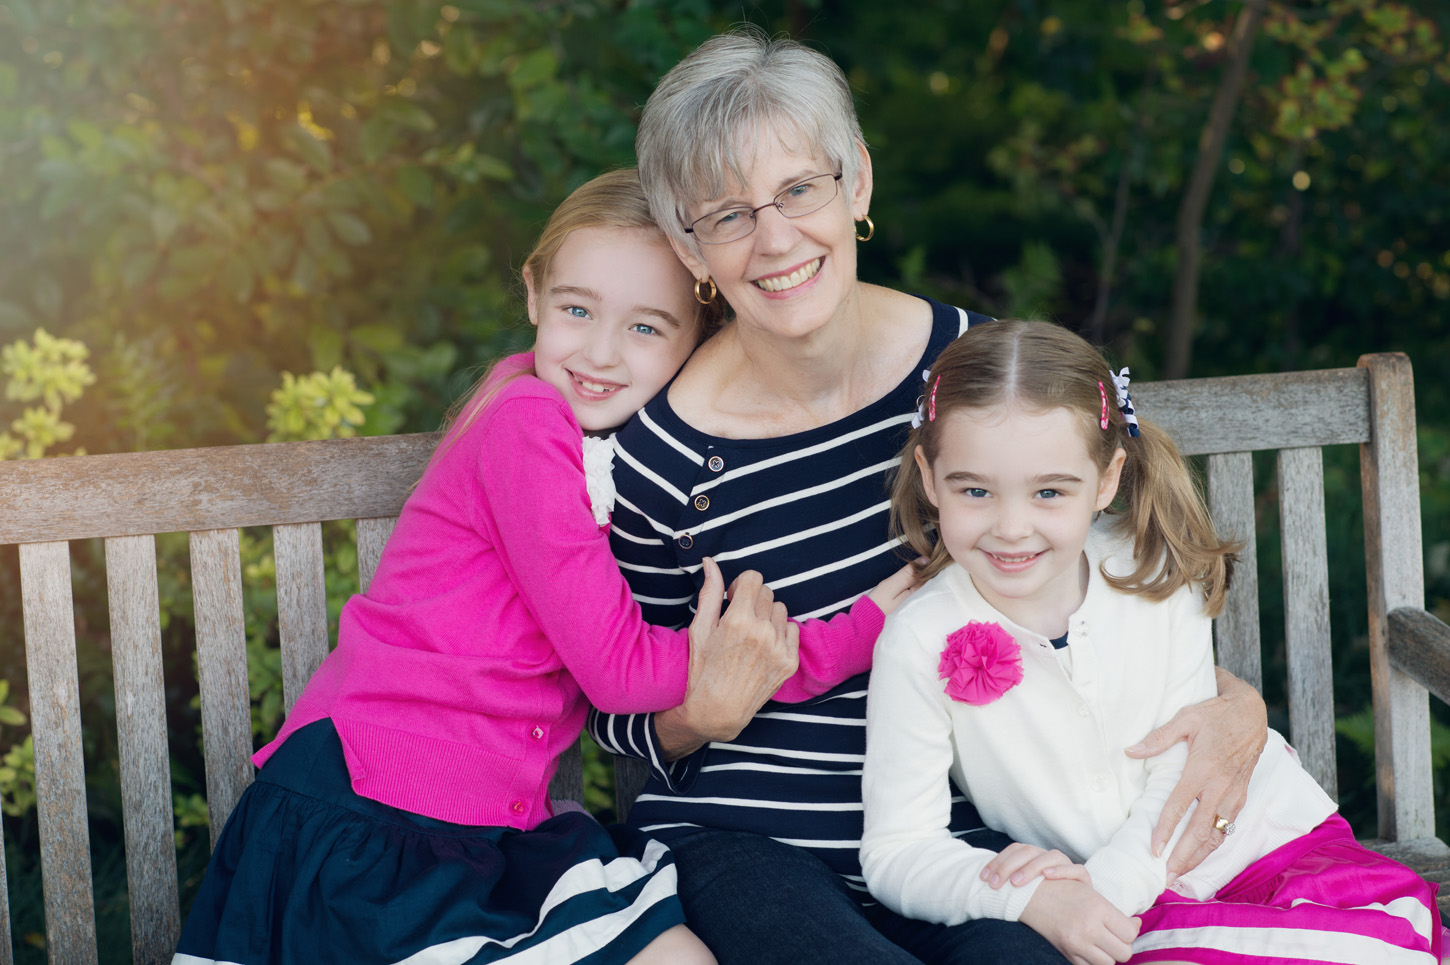 grandmother and granddaughters in the park